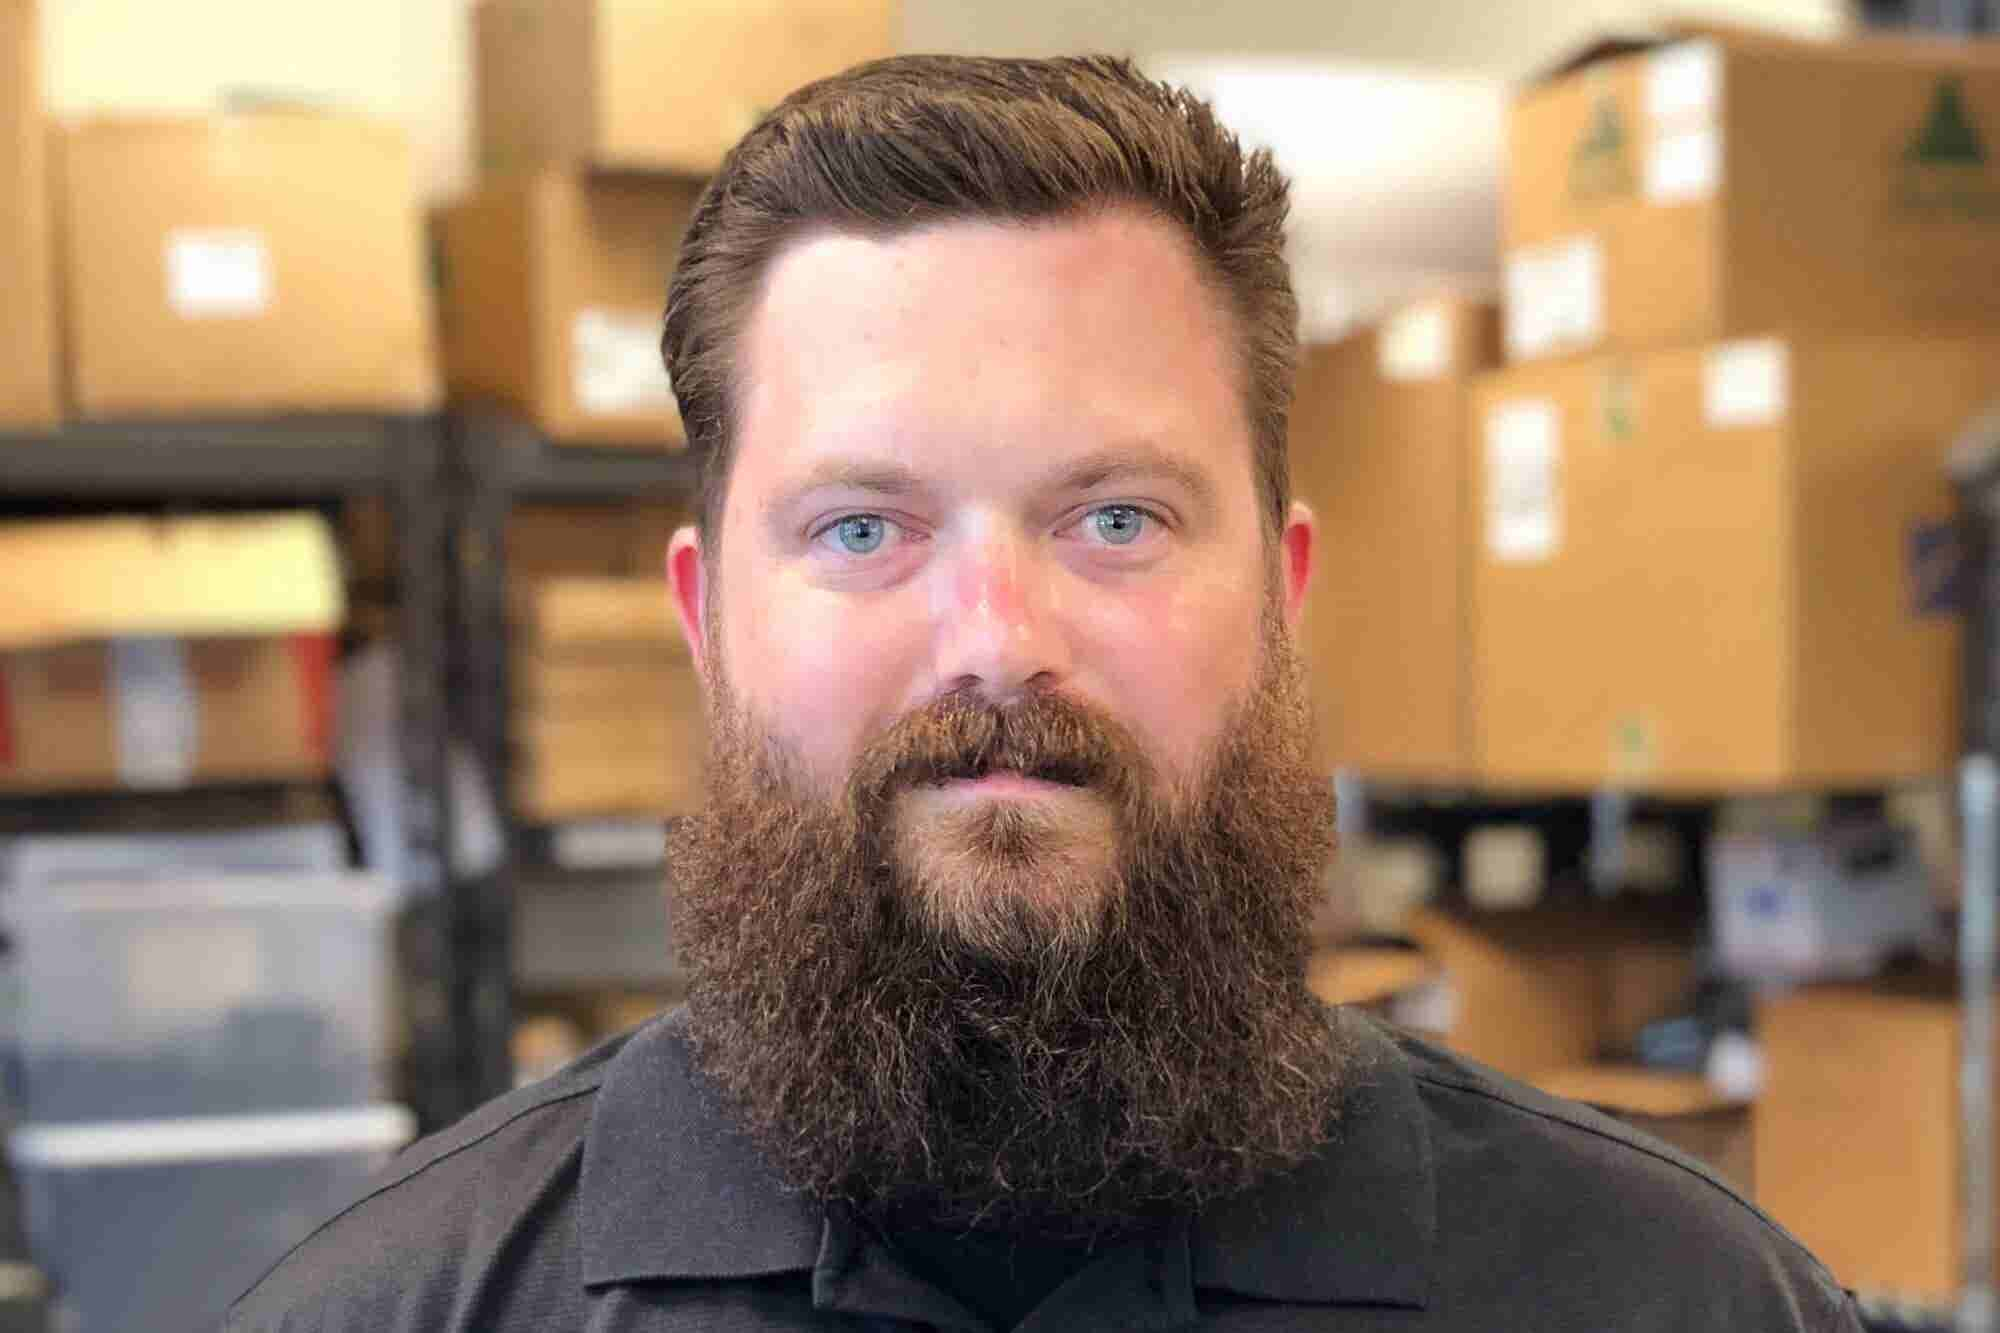 5 Ways This Veteran Used His Military Experience to Grow a $3.5-Million Beard Grooming Business